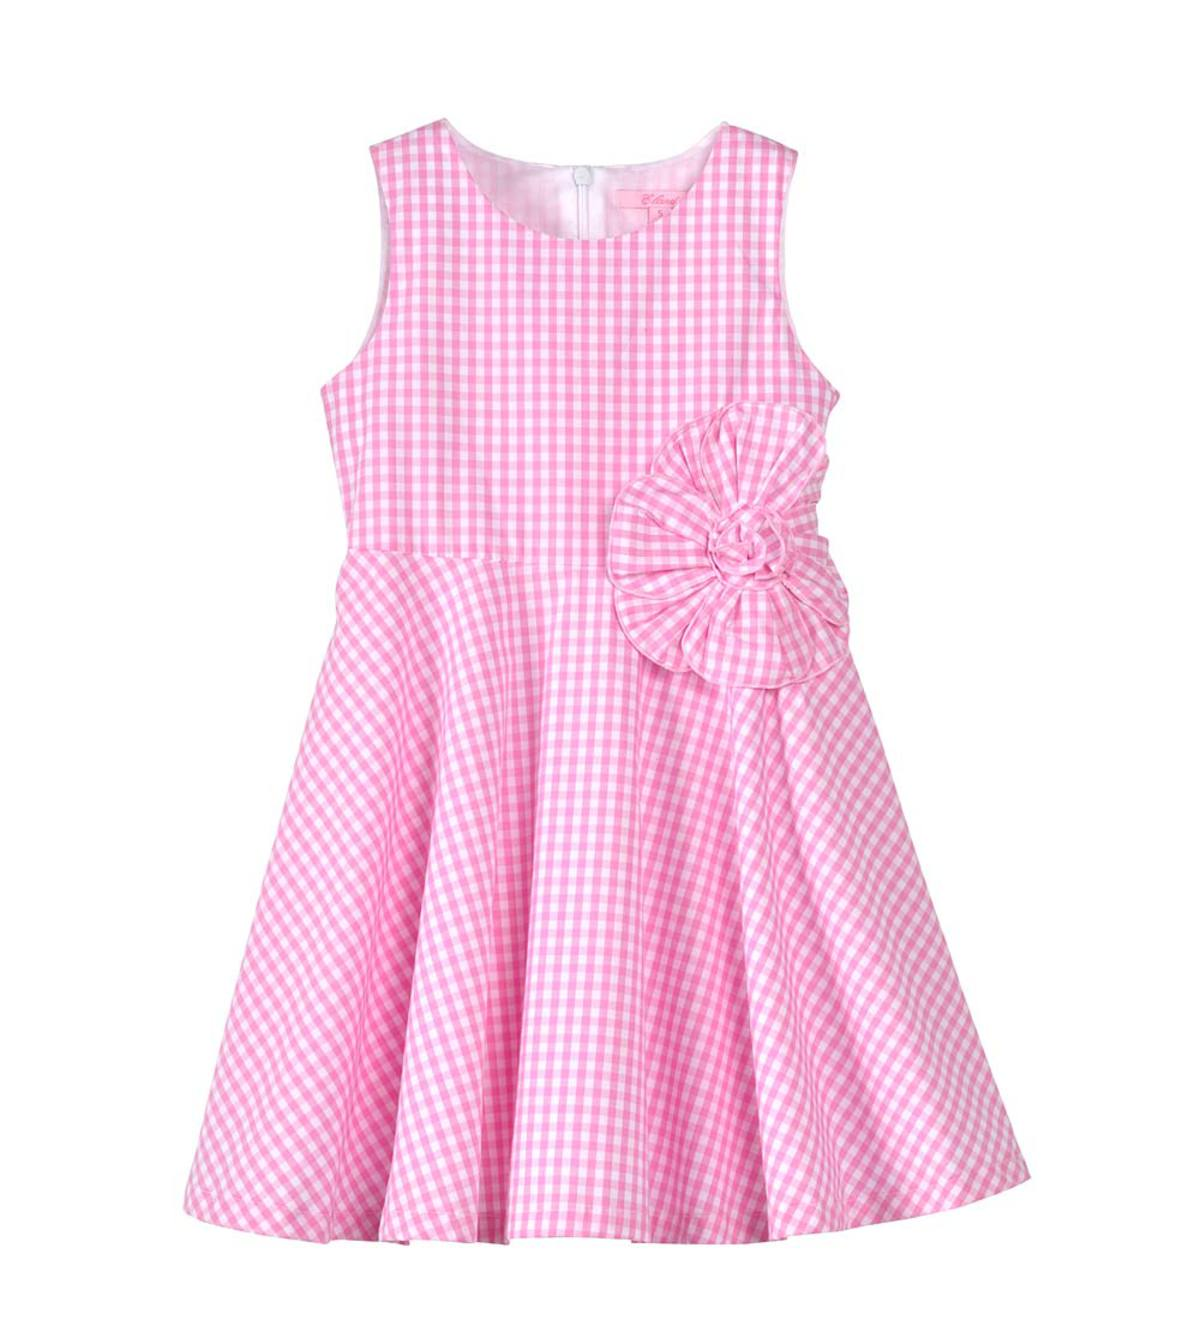 Sleeveless Seersucker Flower Dress - Pink - 6